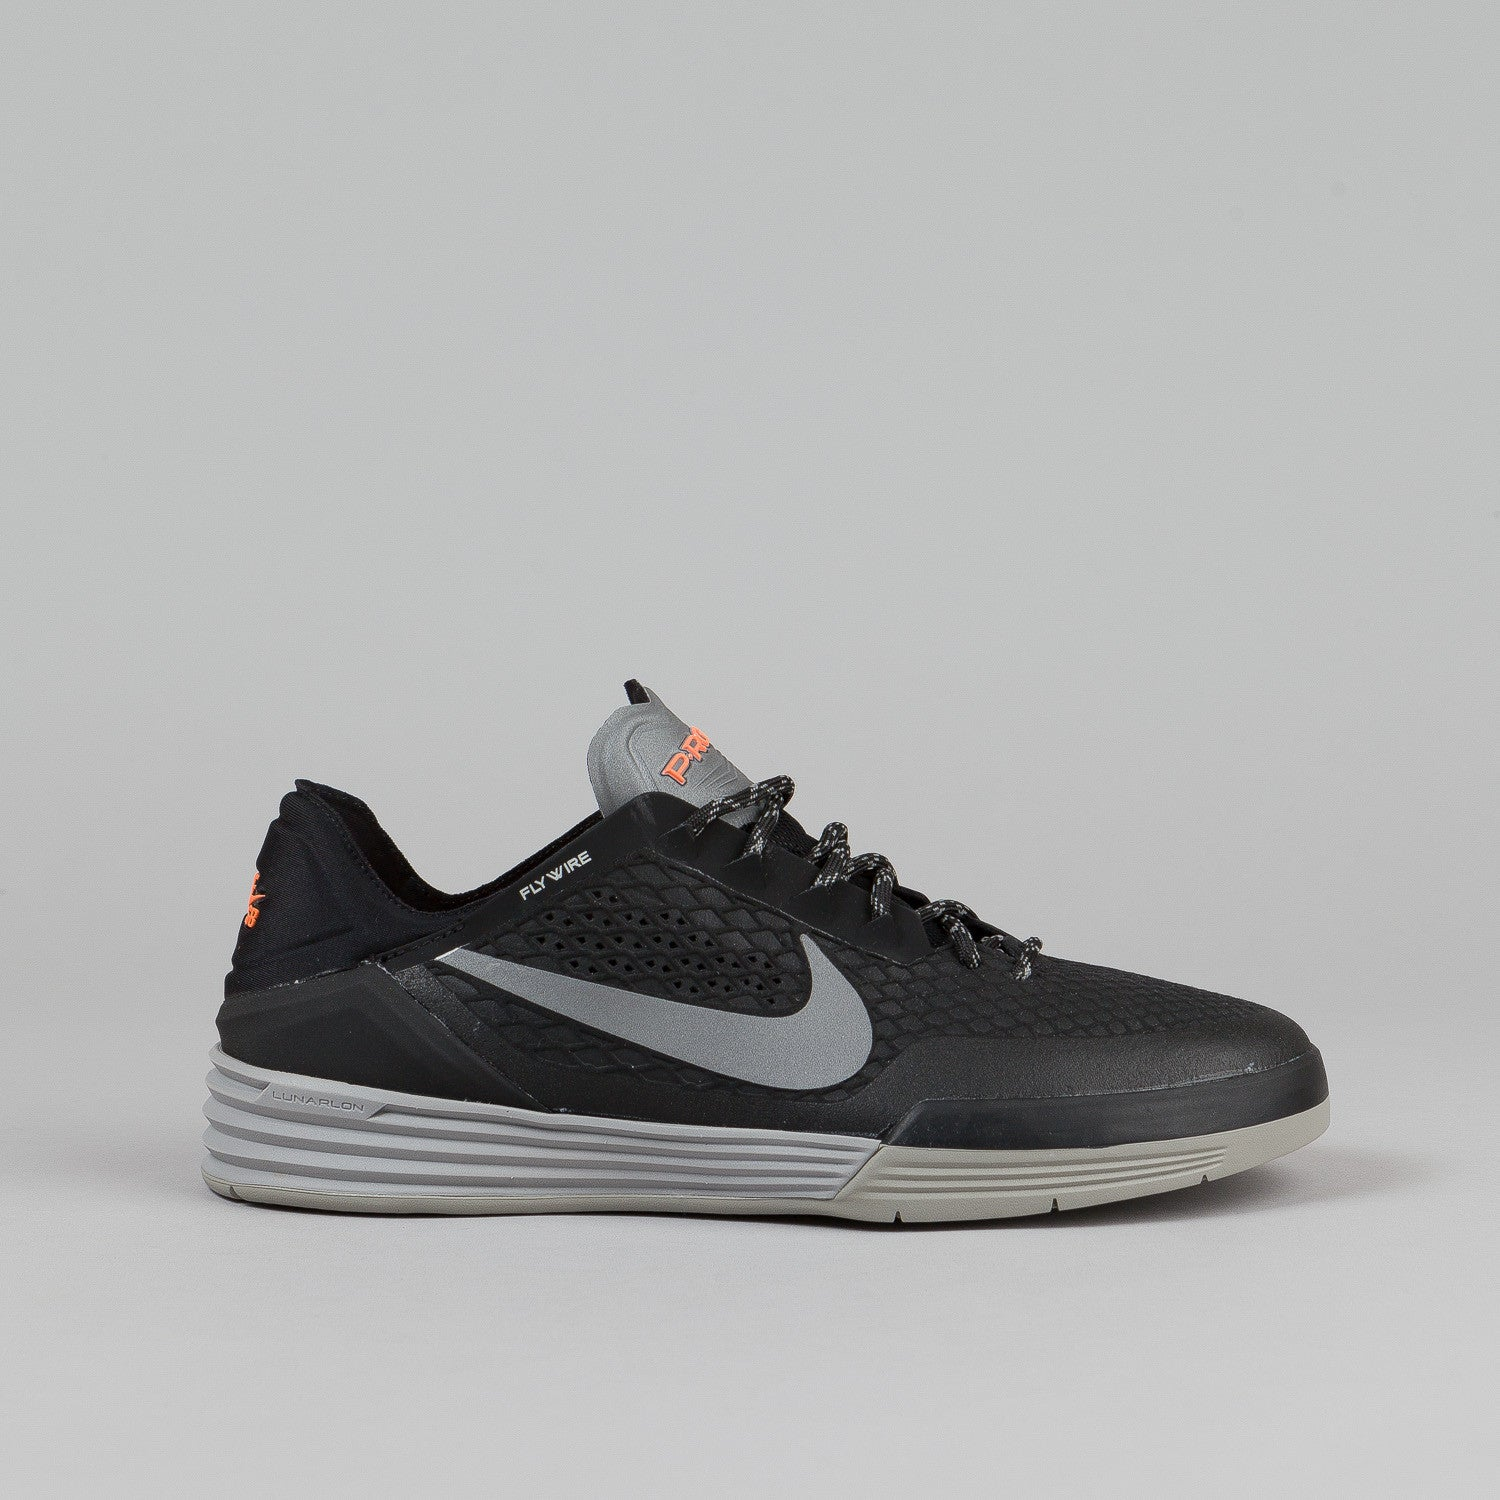 Nike SB Paul Rodriguez 8 Shield Black / Reflective Silver